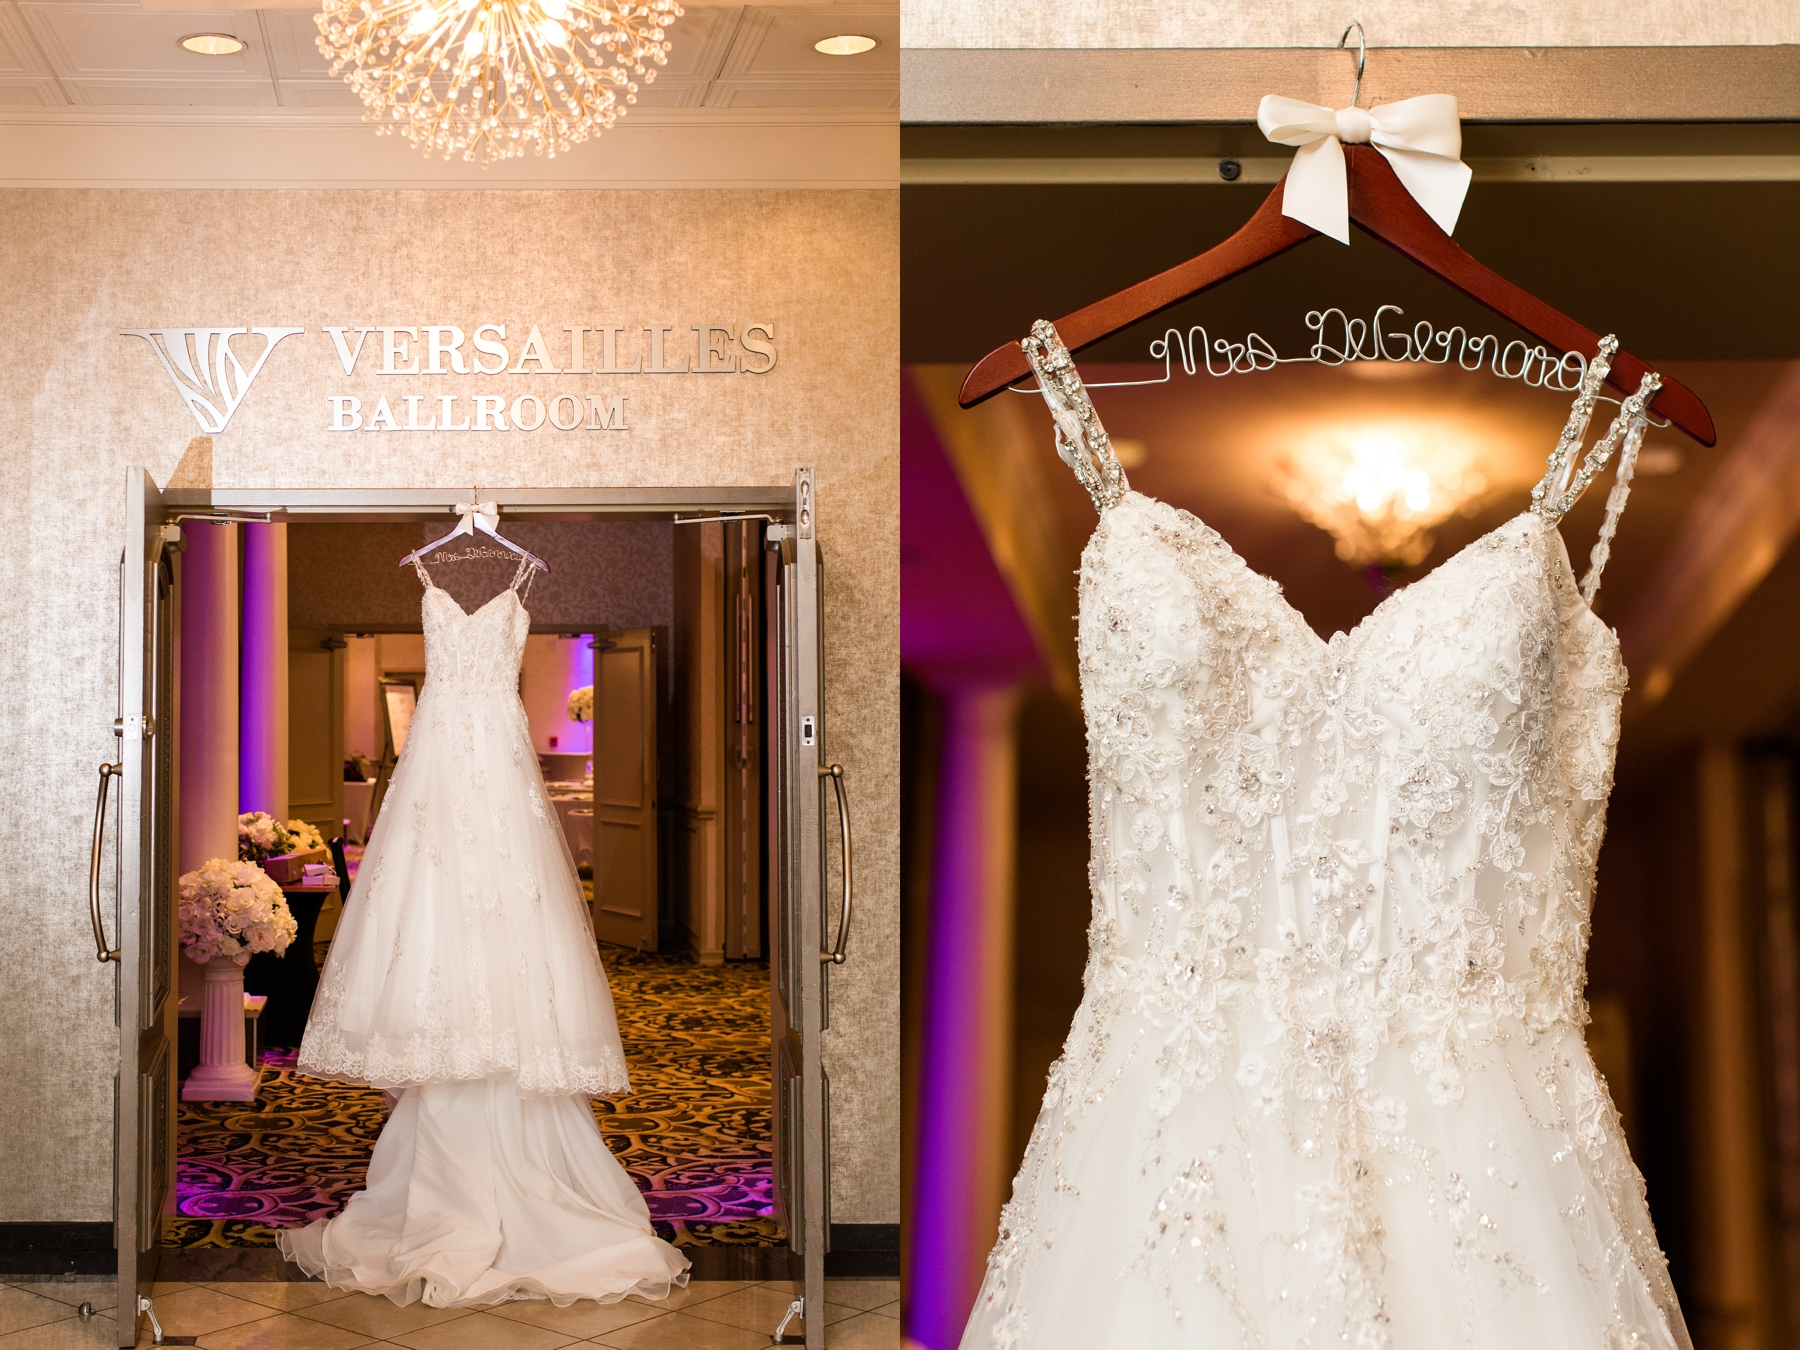 Katie + Frank's Wedding at The Versailles Ballroom of Toms River